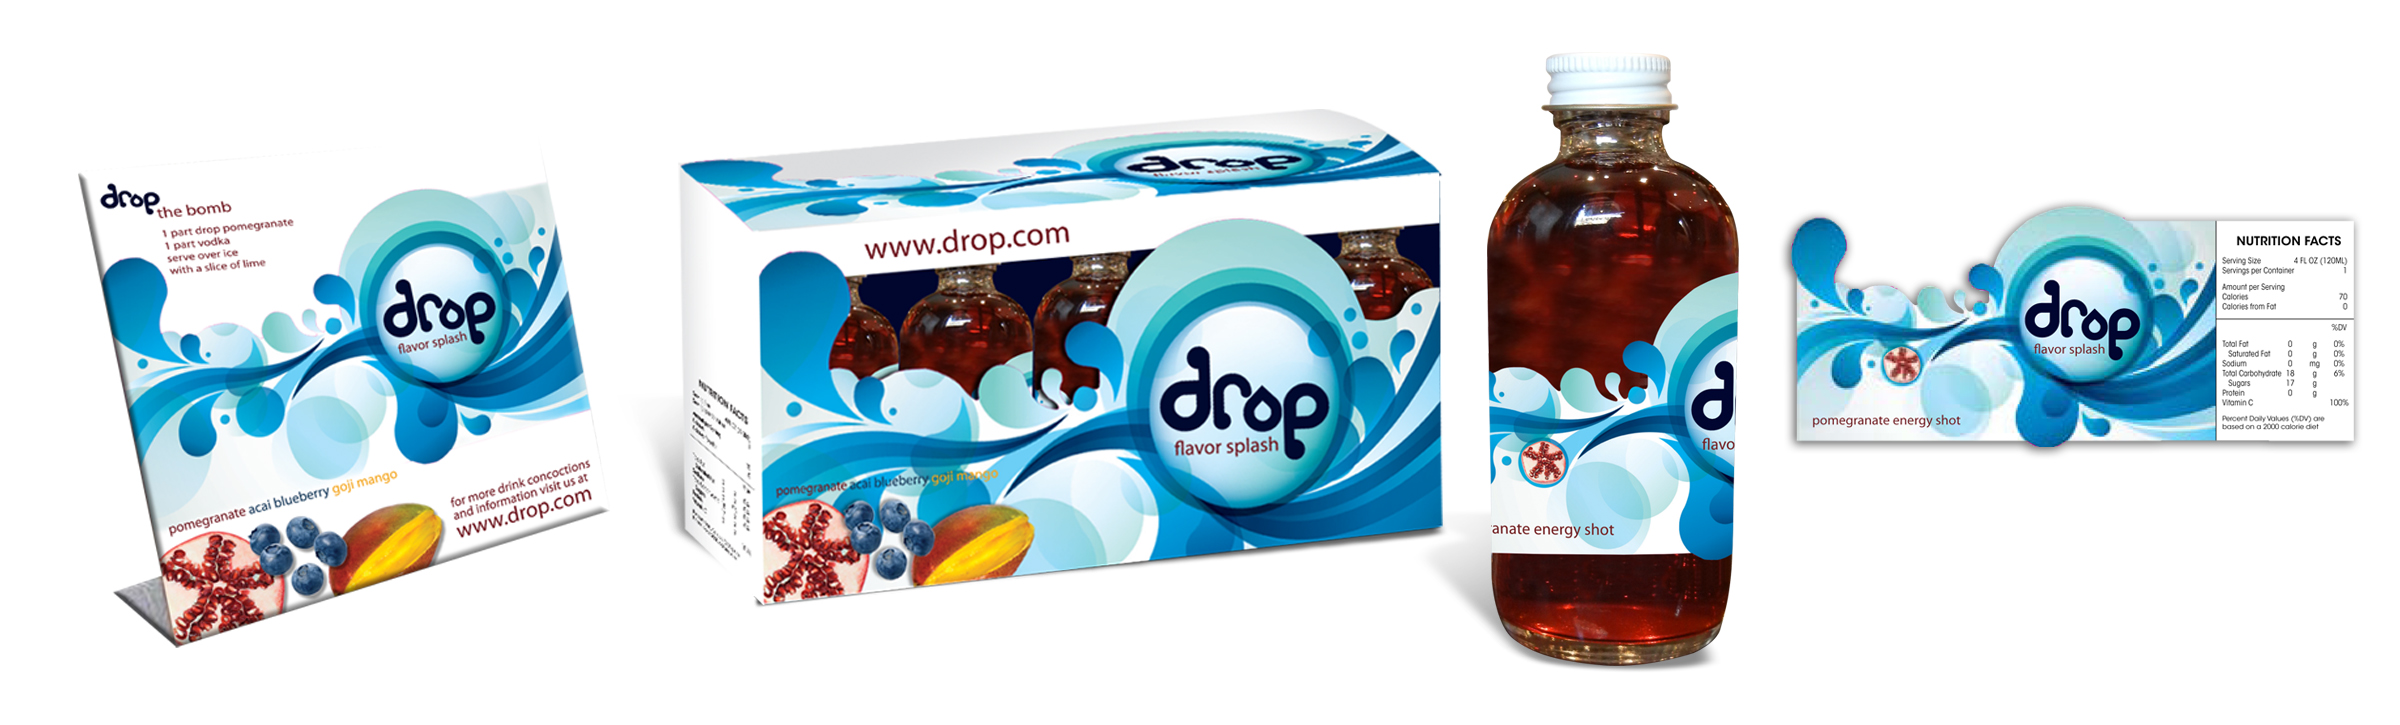 Beverage Company  /  Drop   /  Packaging Design POS POstcard,packaging,Bottle and label